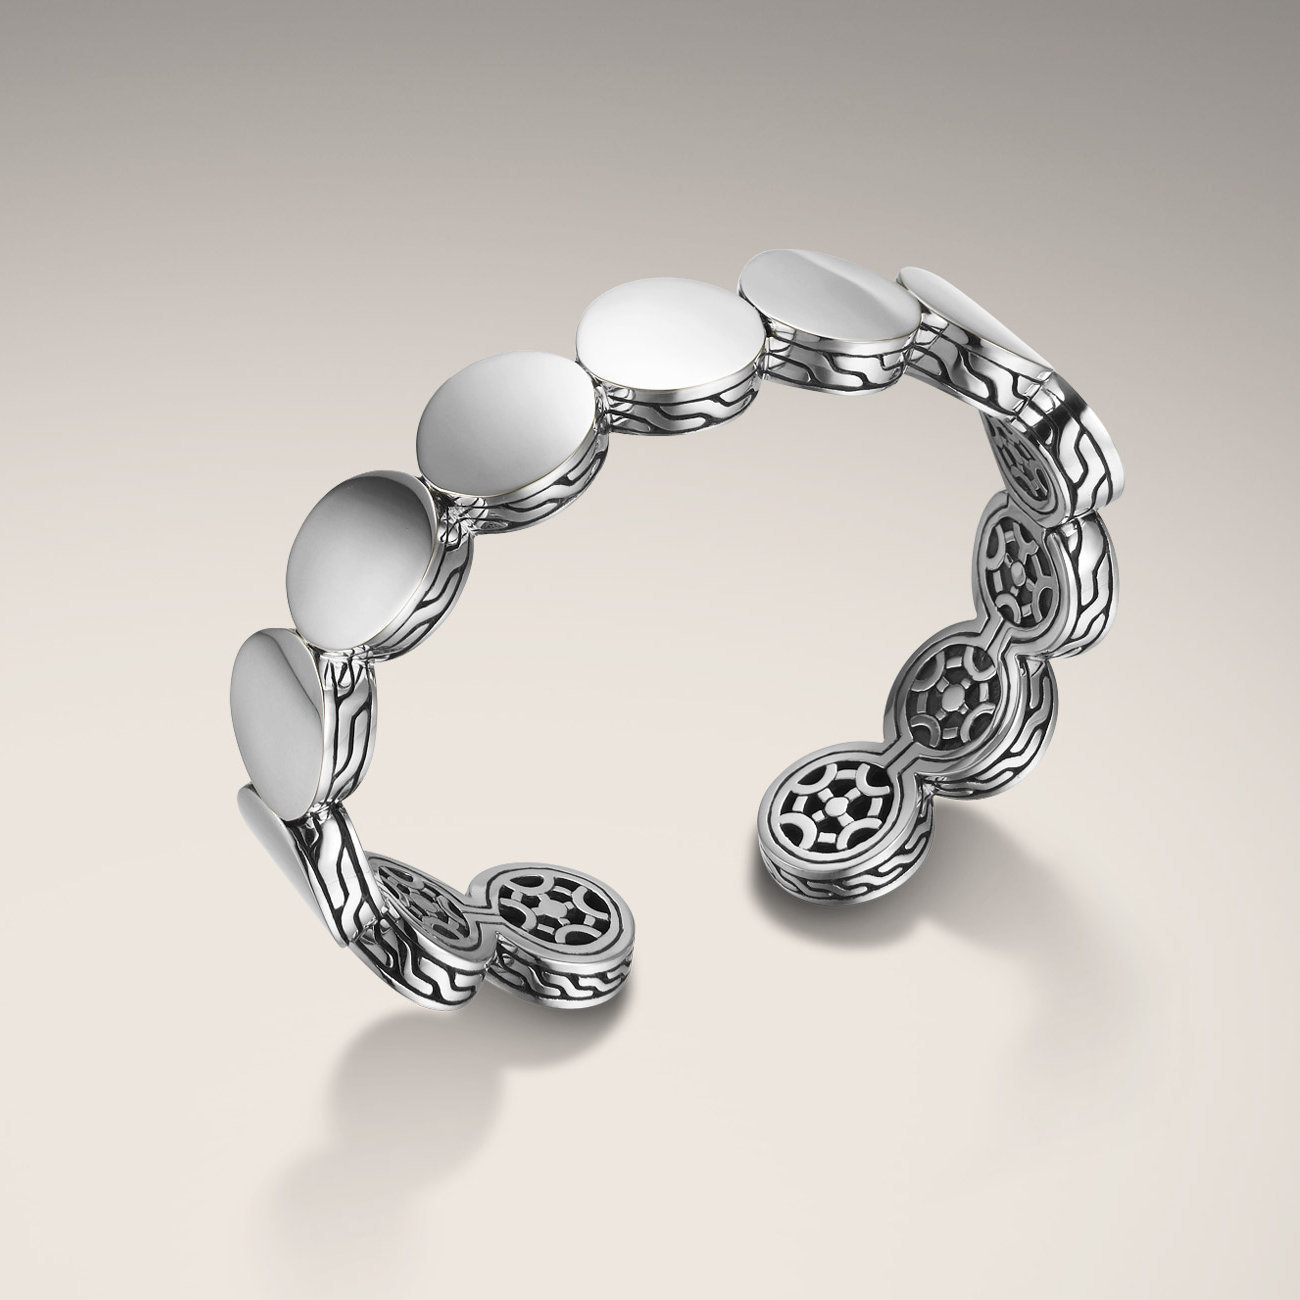 John Hardy dot collection. Polished silver and classic chain style flexible cuff bracelet.   $795